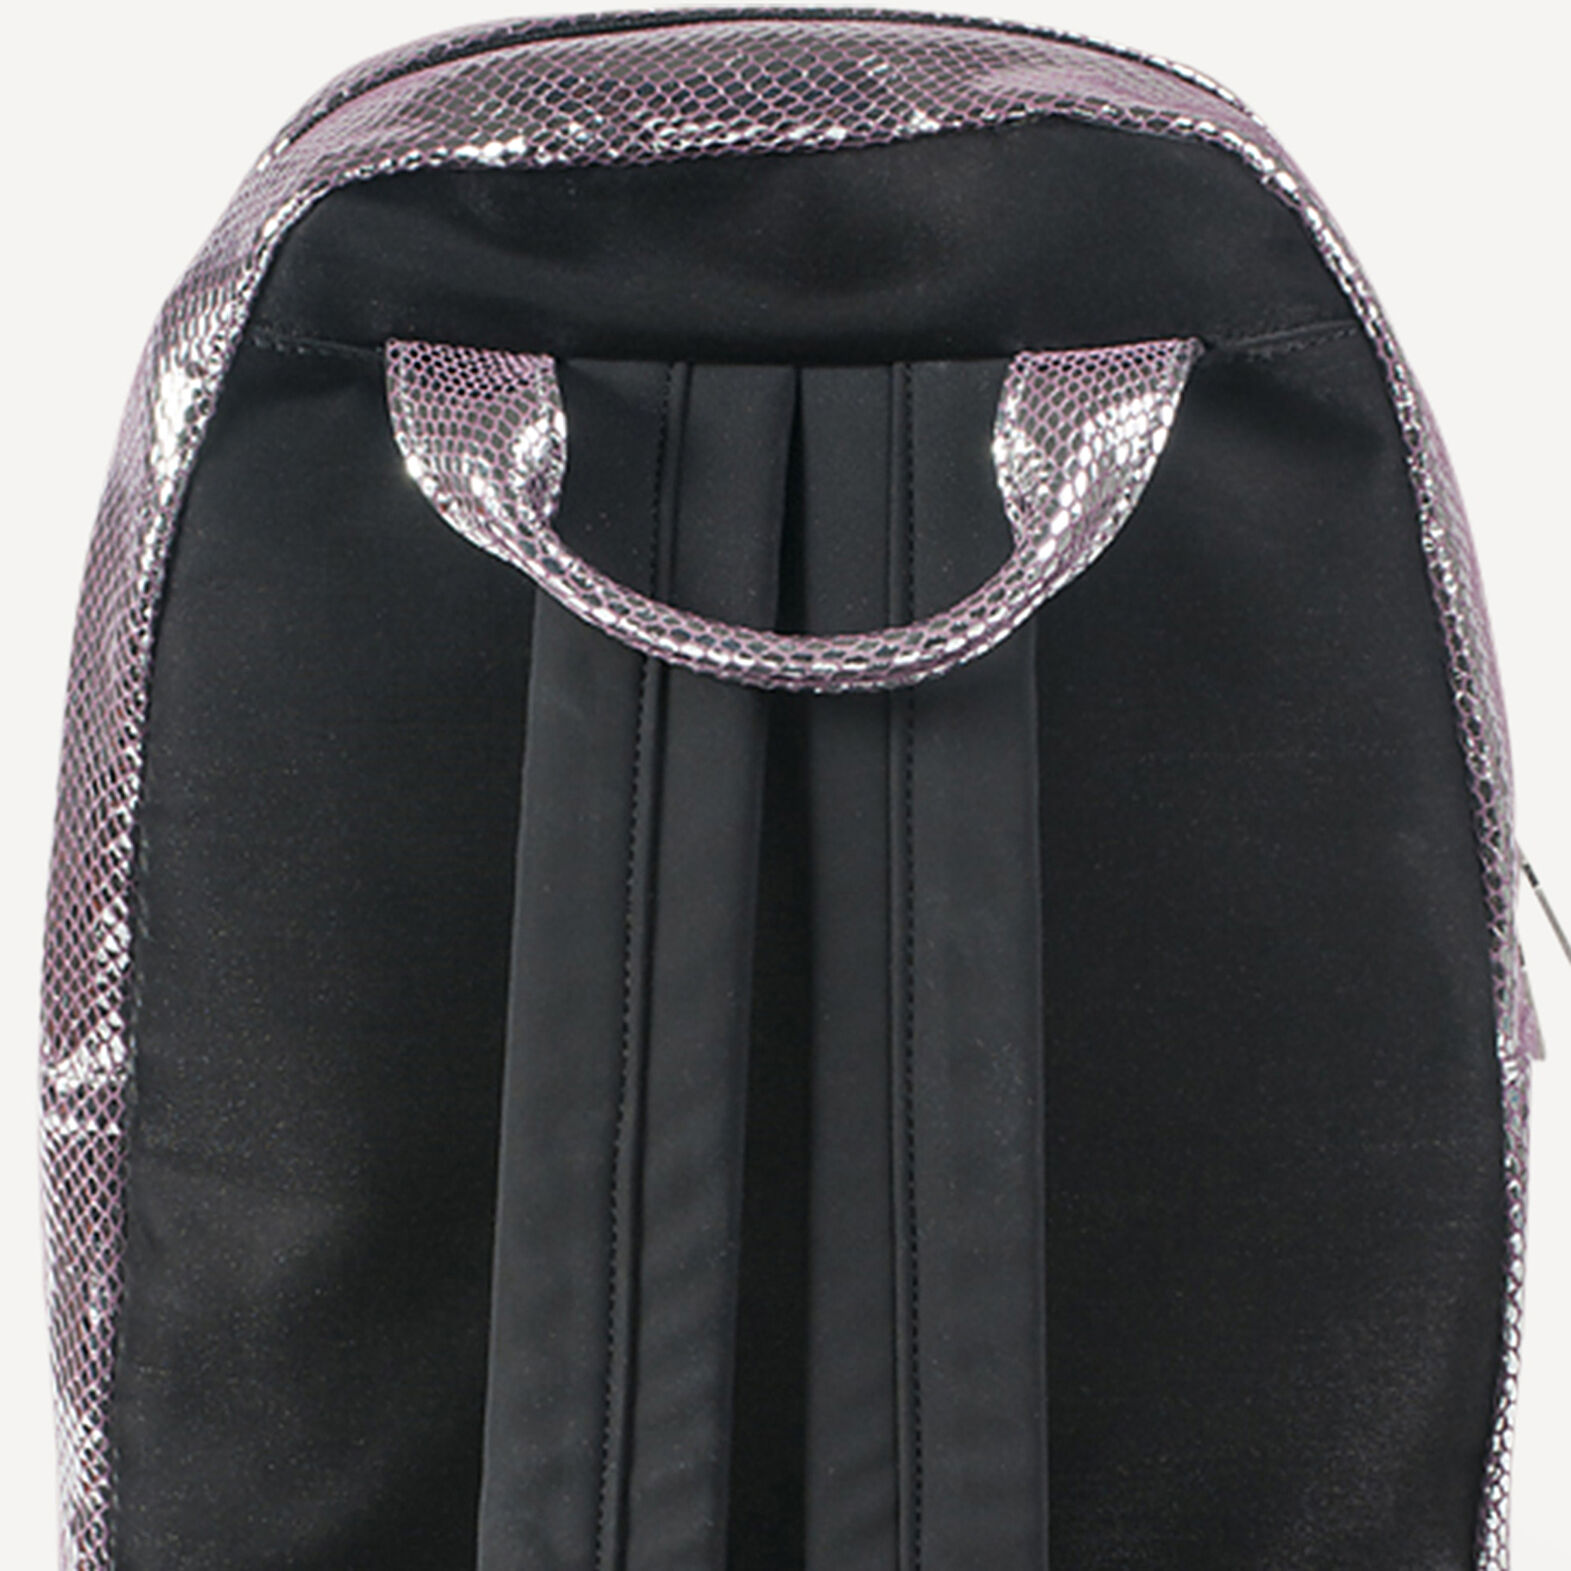 Susy Backpack 5539 Serpentina